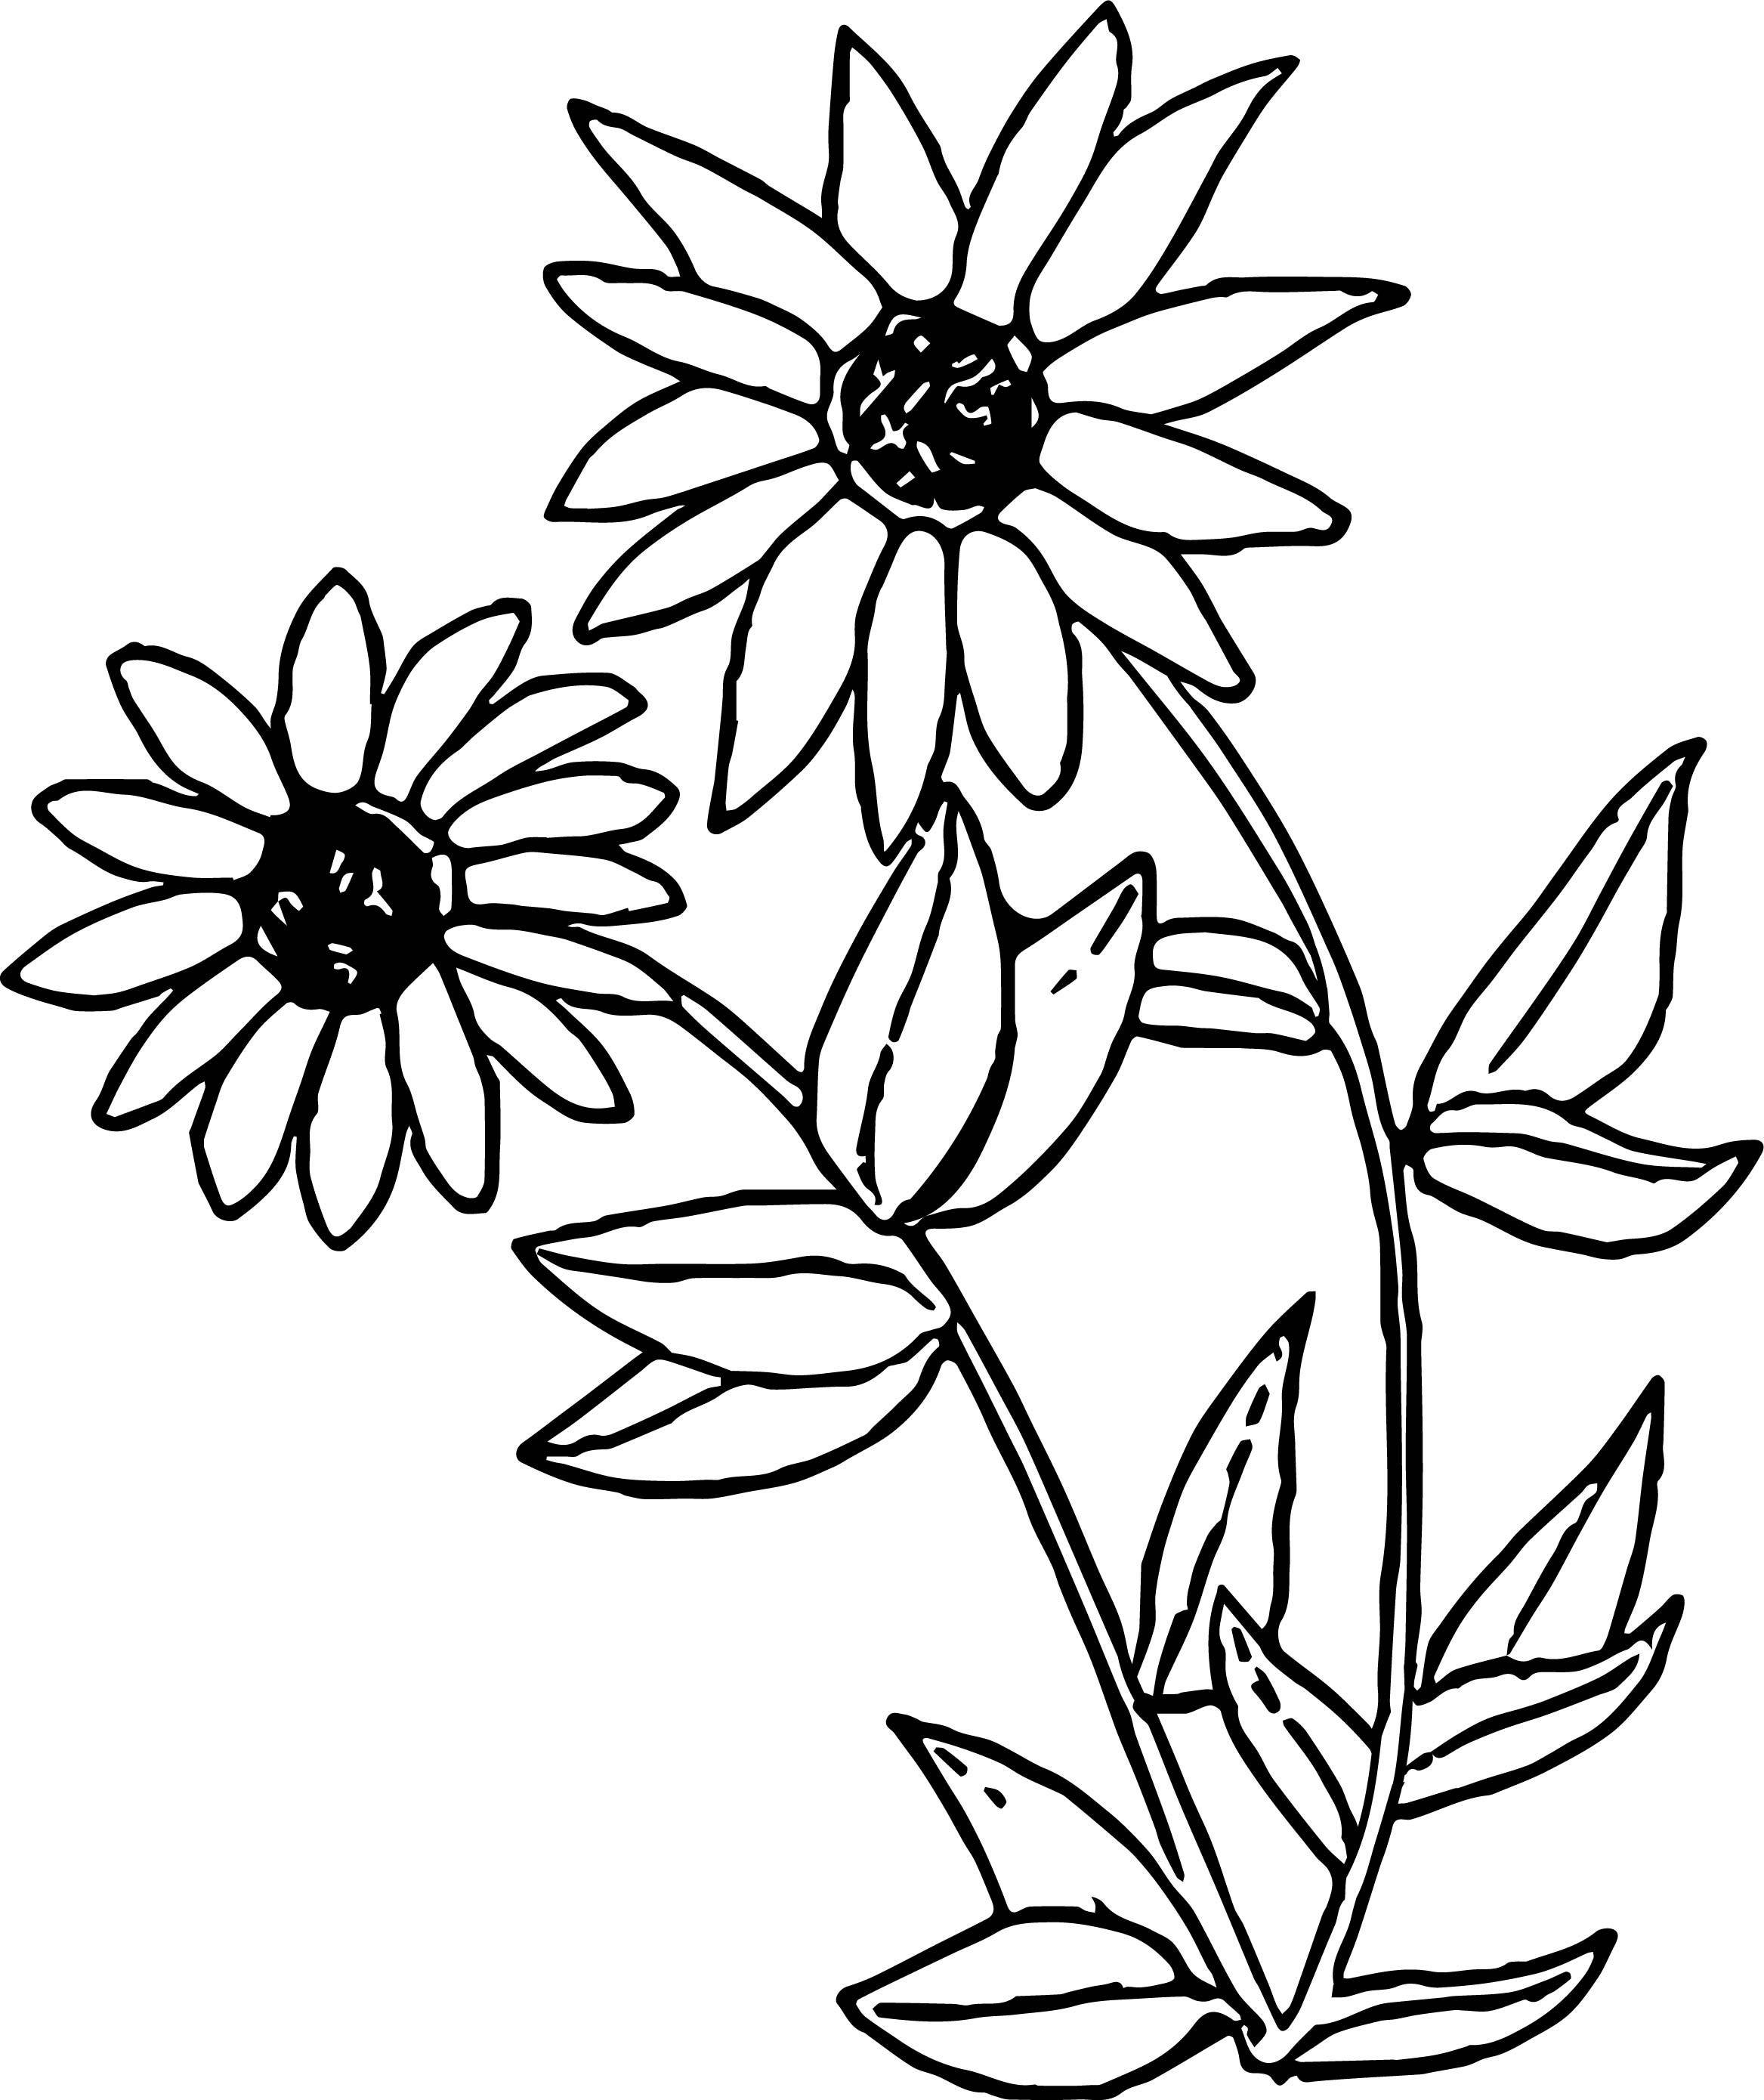 Peas Coloring Page